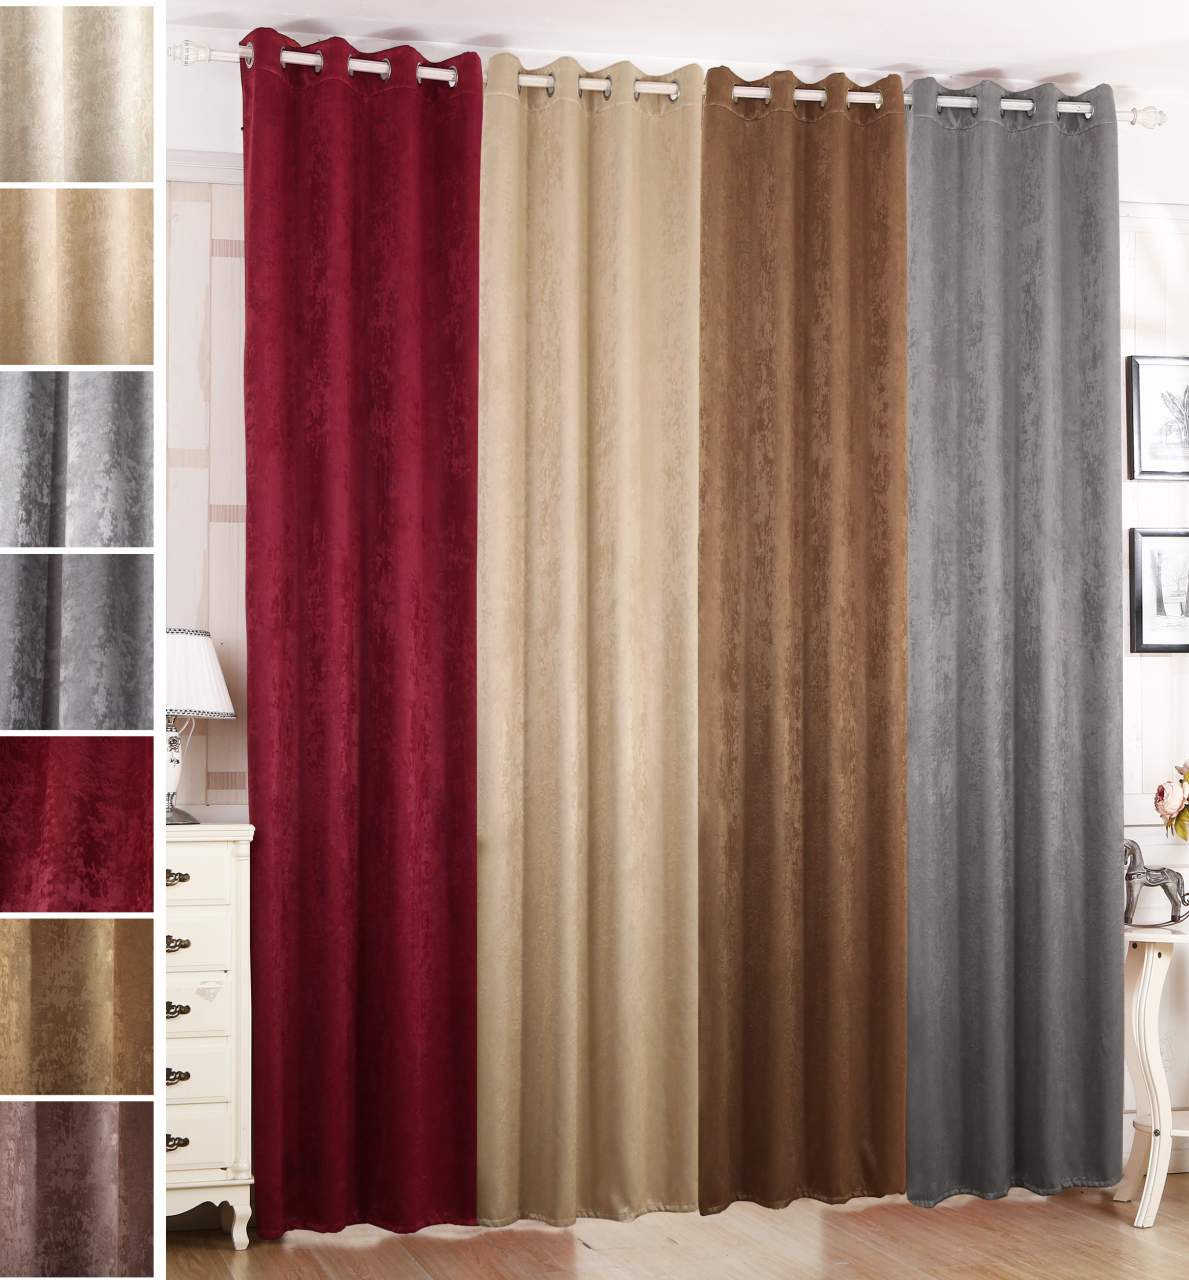 Thermo Vorhang Curtain With Eyelets In Damask Look, Opaque | Woltu.eu